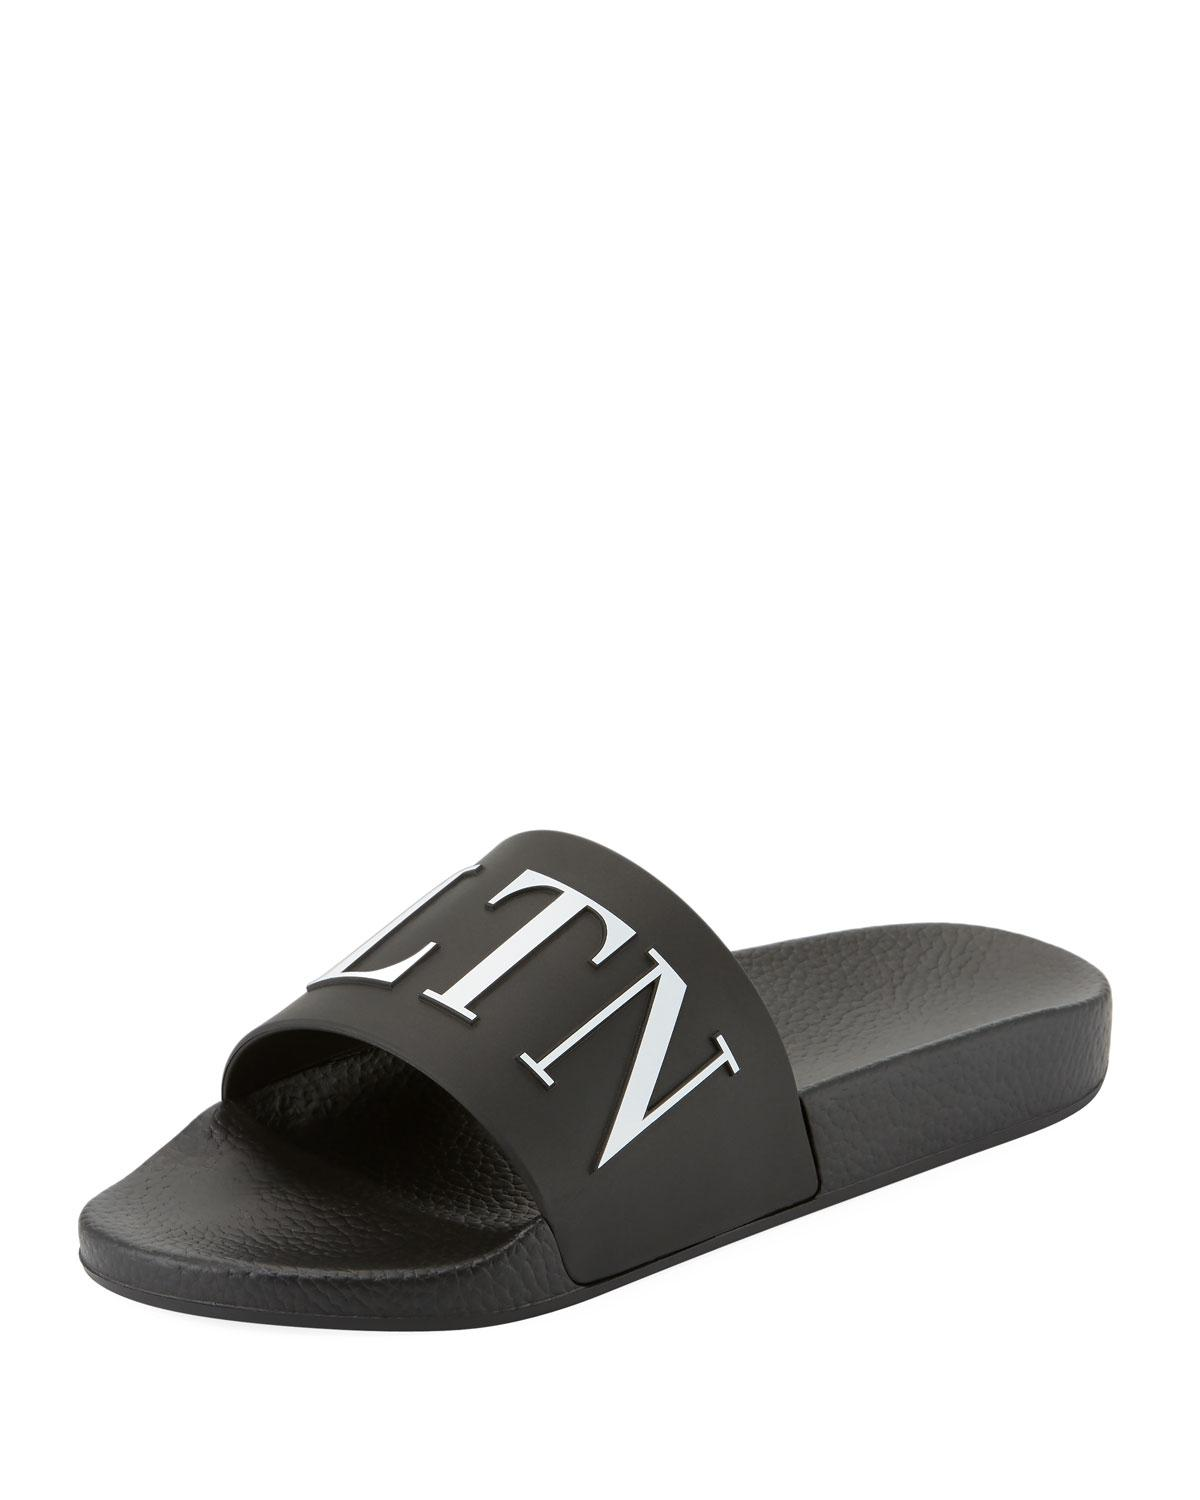 Real Online Affordable For Sale Valentino VLTN LOGO PVC SLIDE SANDALS Clearance Authentic nTJYSLhp